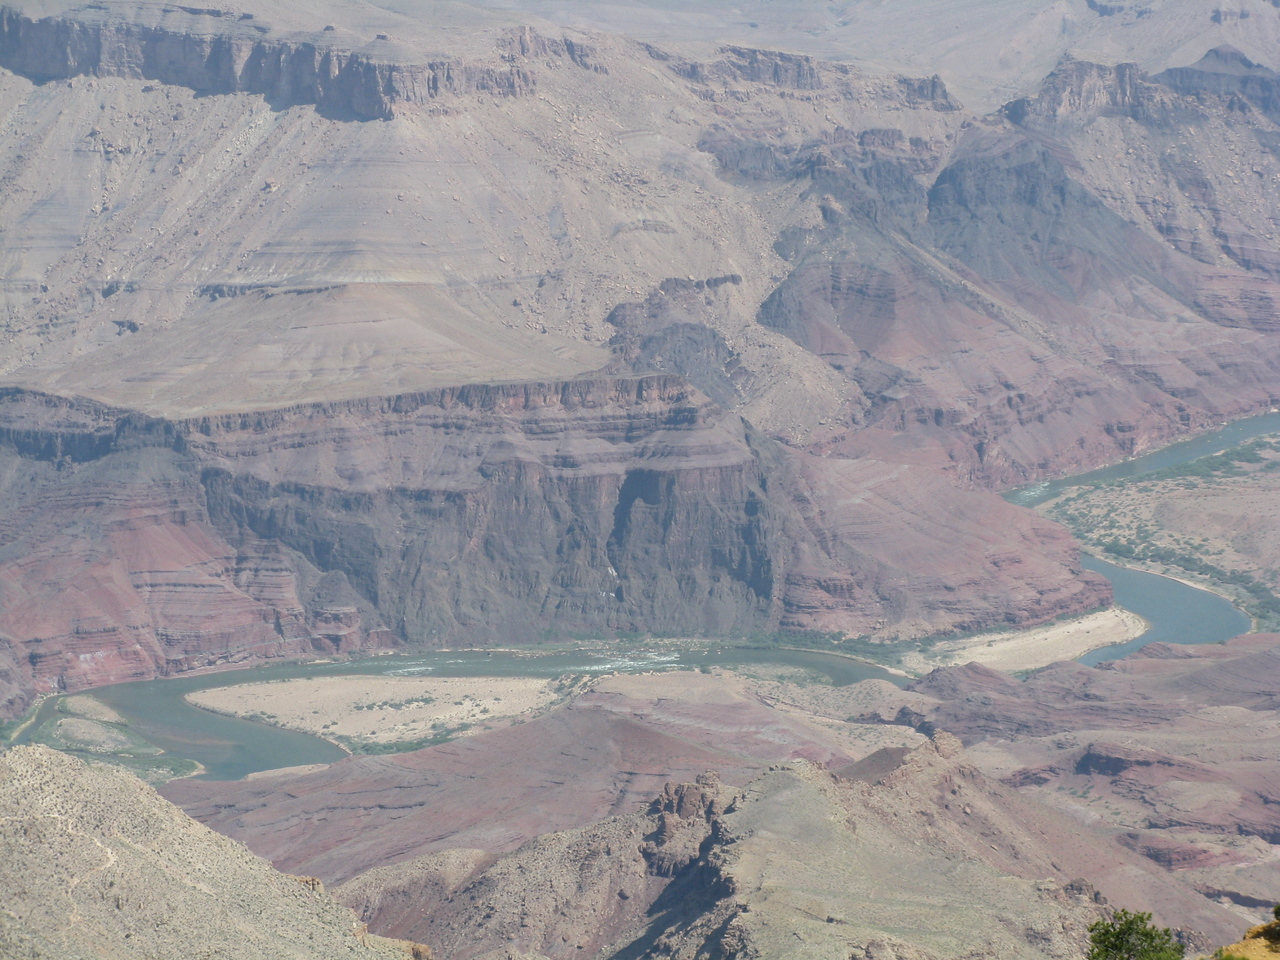 In the center of the picture is Tanner Rapid at mile 68.5.